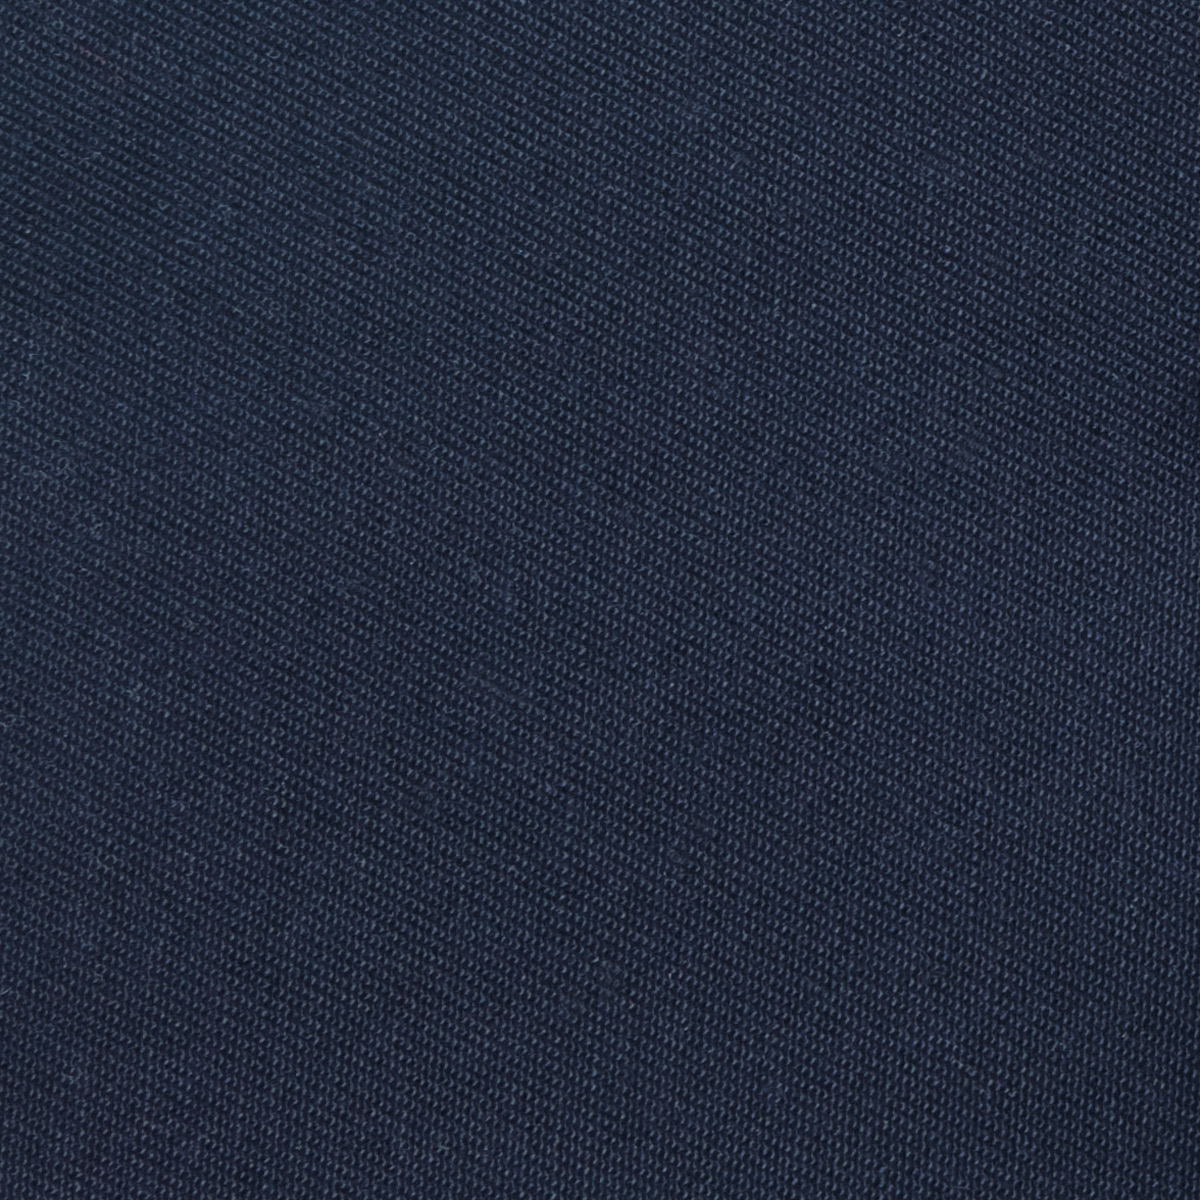 Buy tailor made shirts online - Lightweight Cotton Leisure Cloth - French Navy with lining